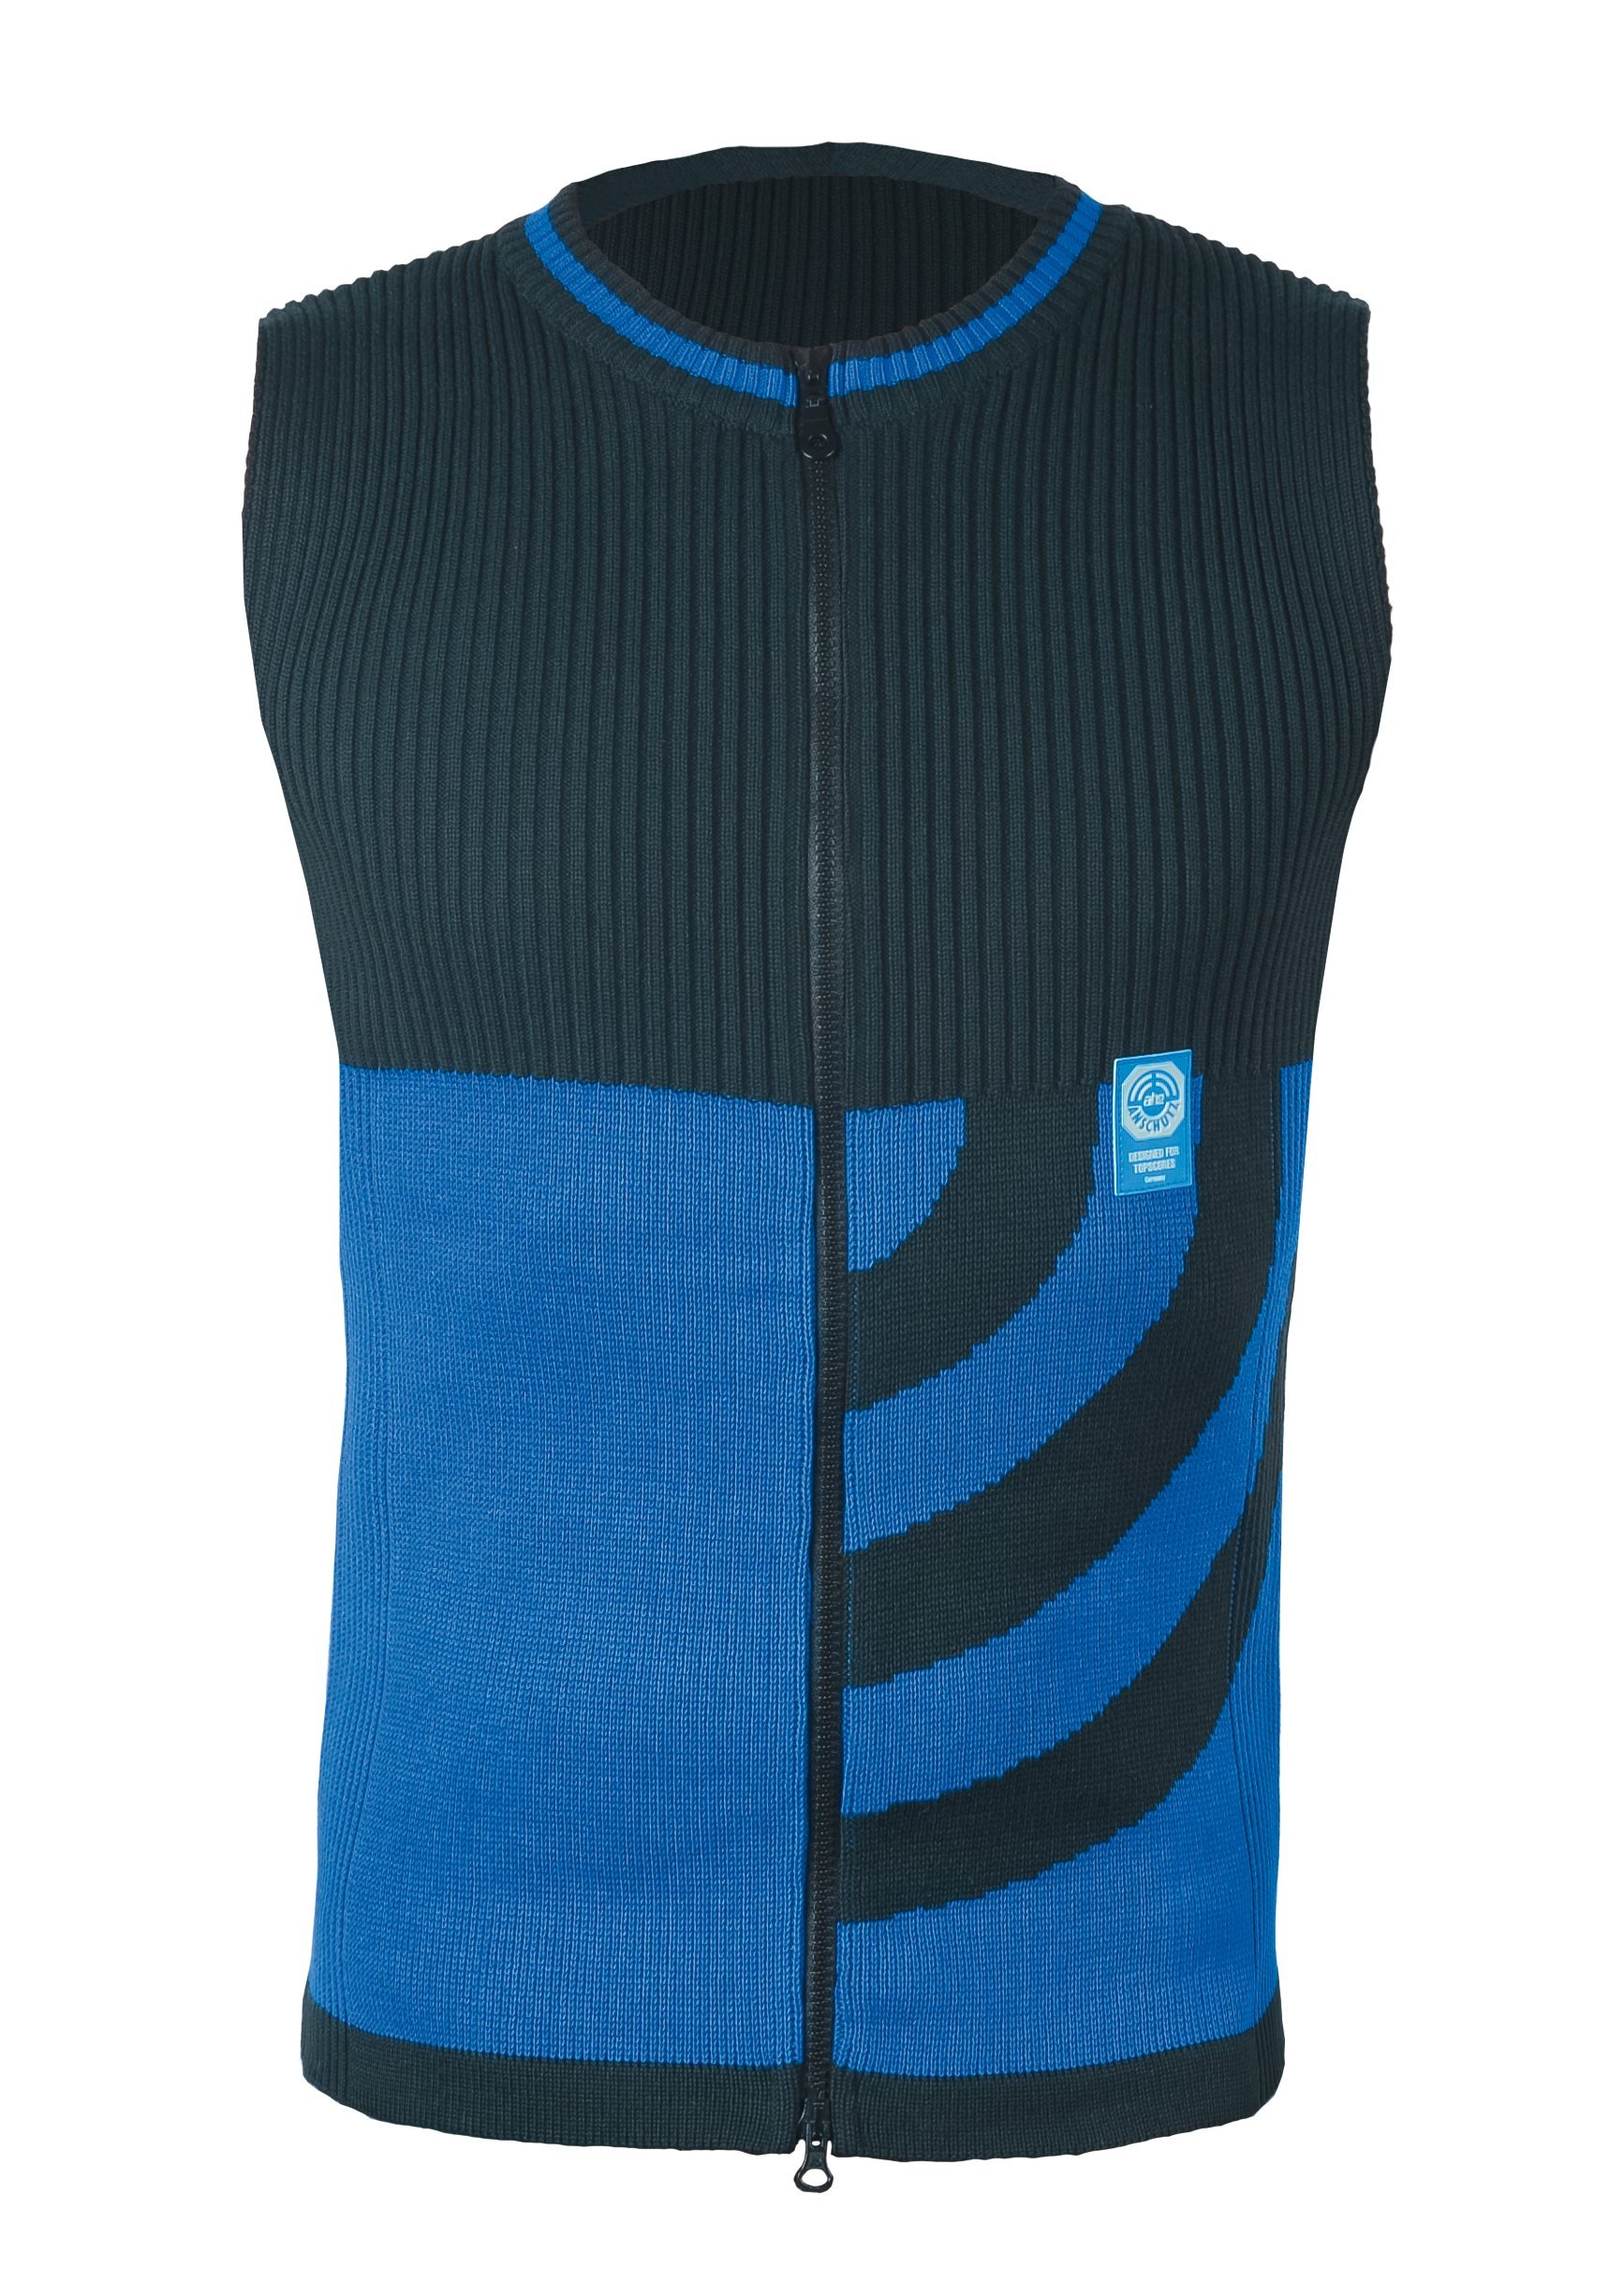 ahg-shooting vest without sleeve